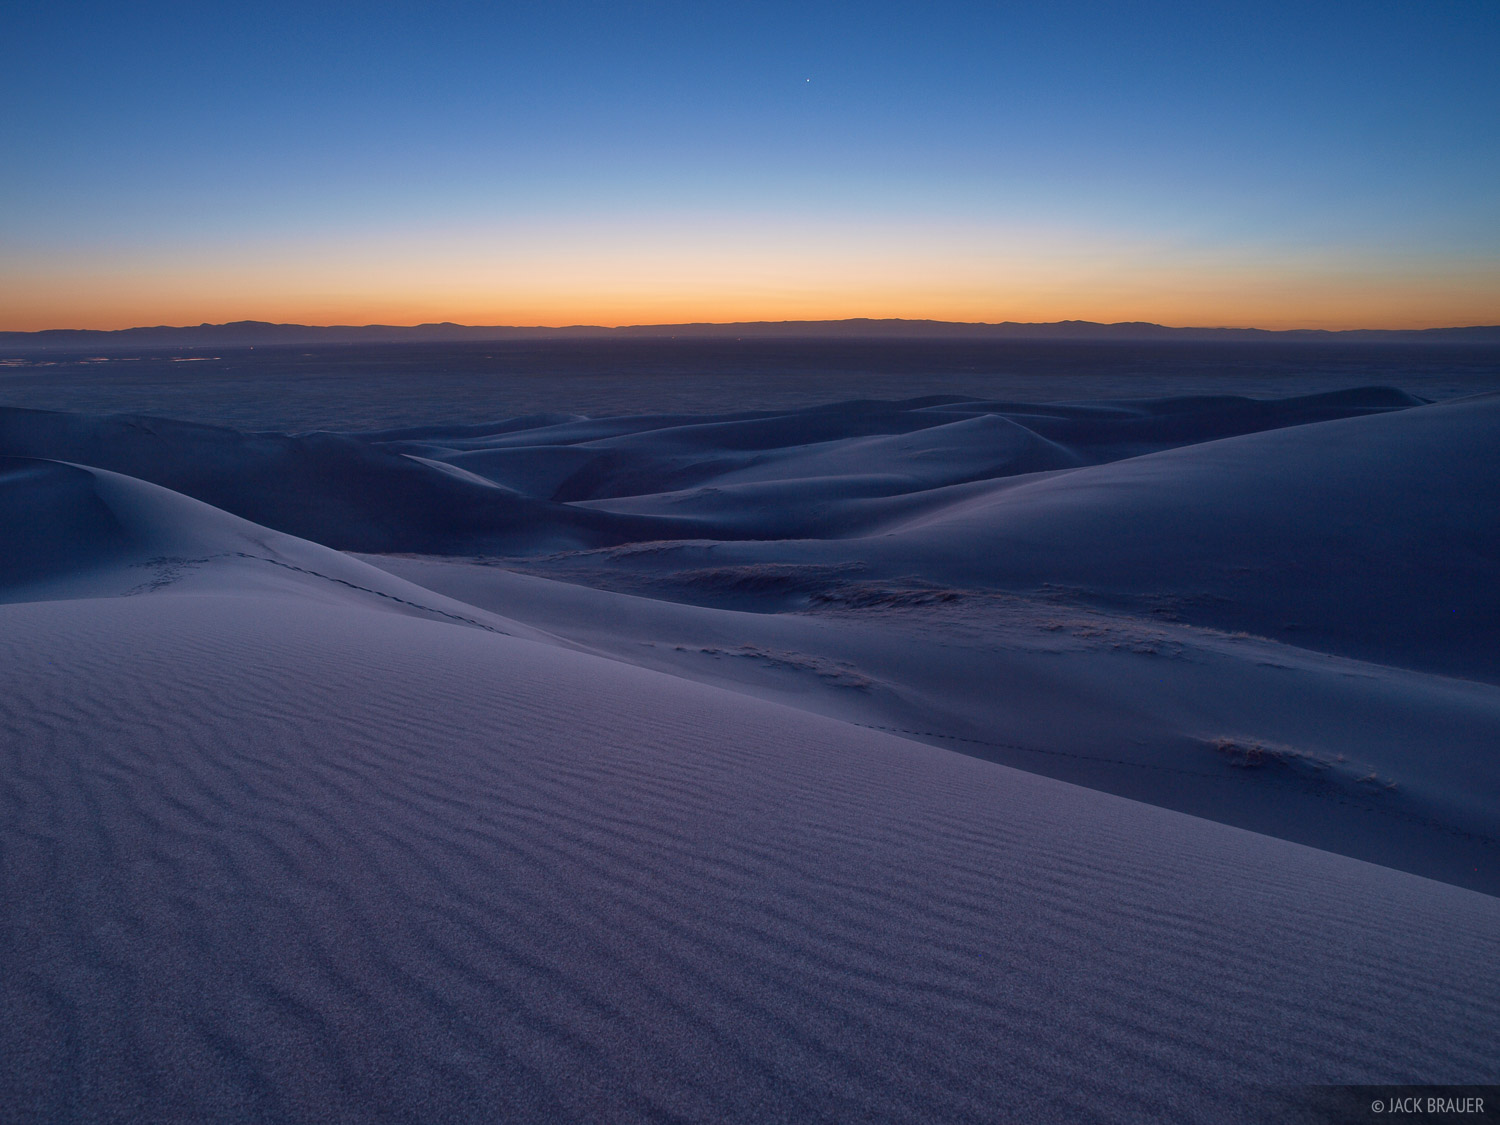 Looking west at the twilight sky over the San Luis Valley, as seen from the western part of the Great Sand Dunes.